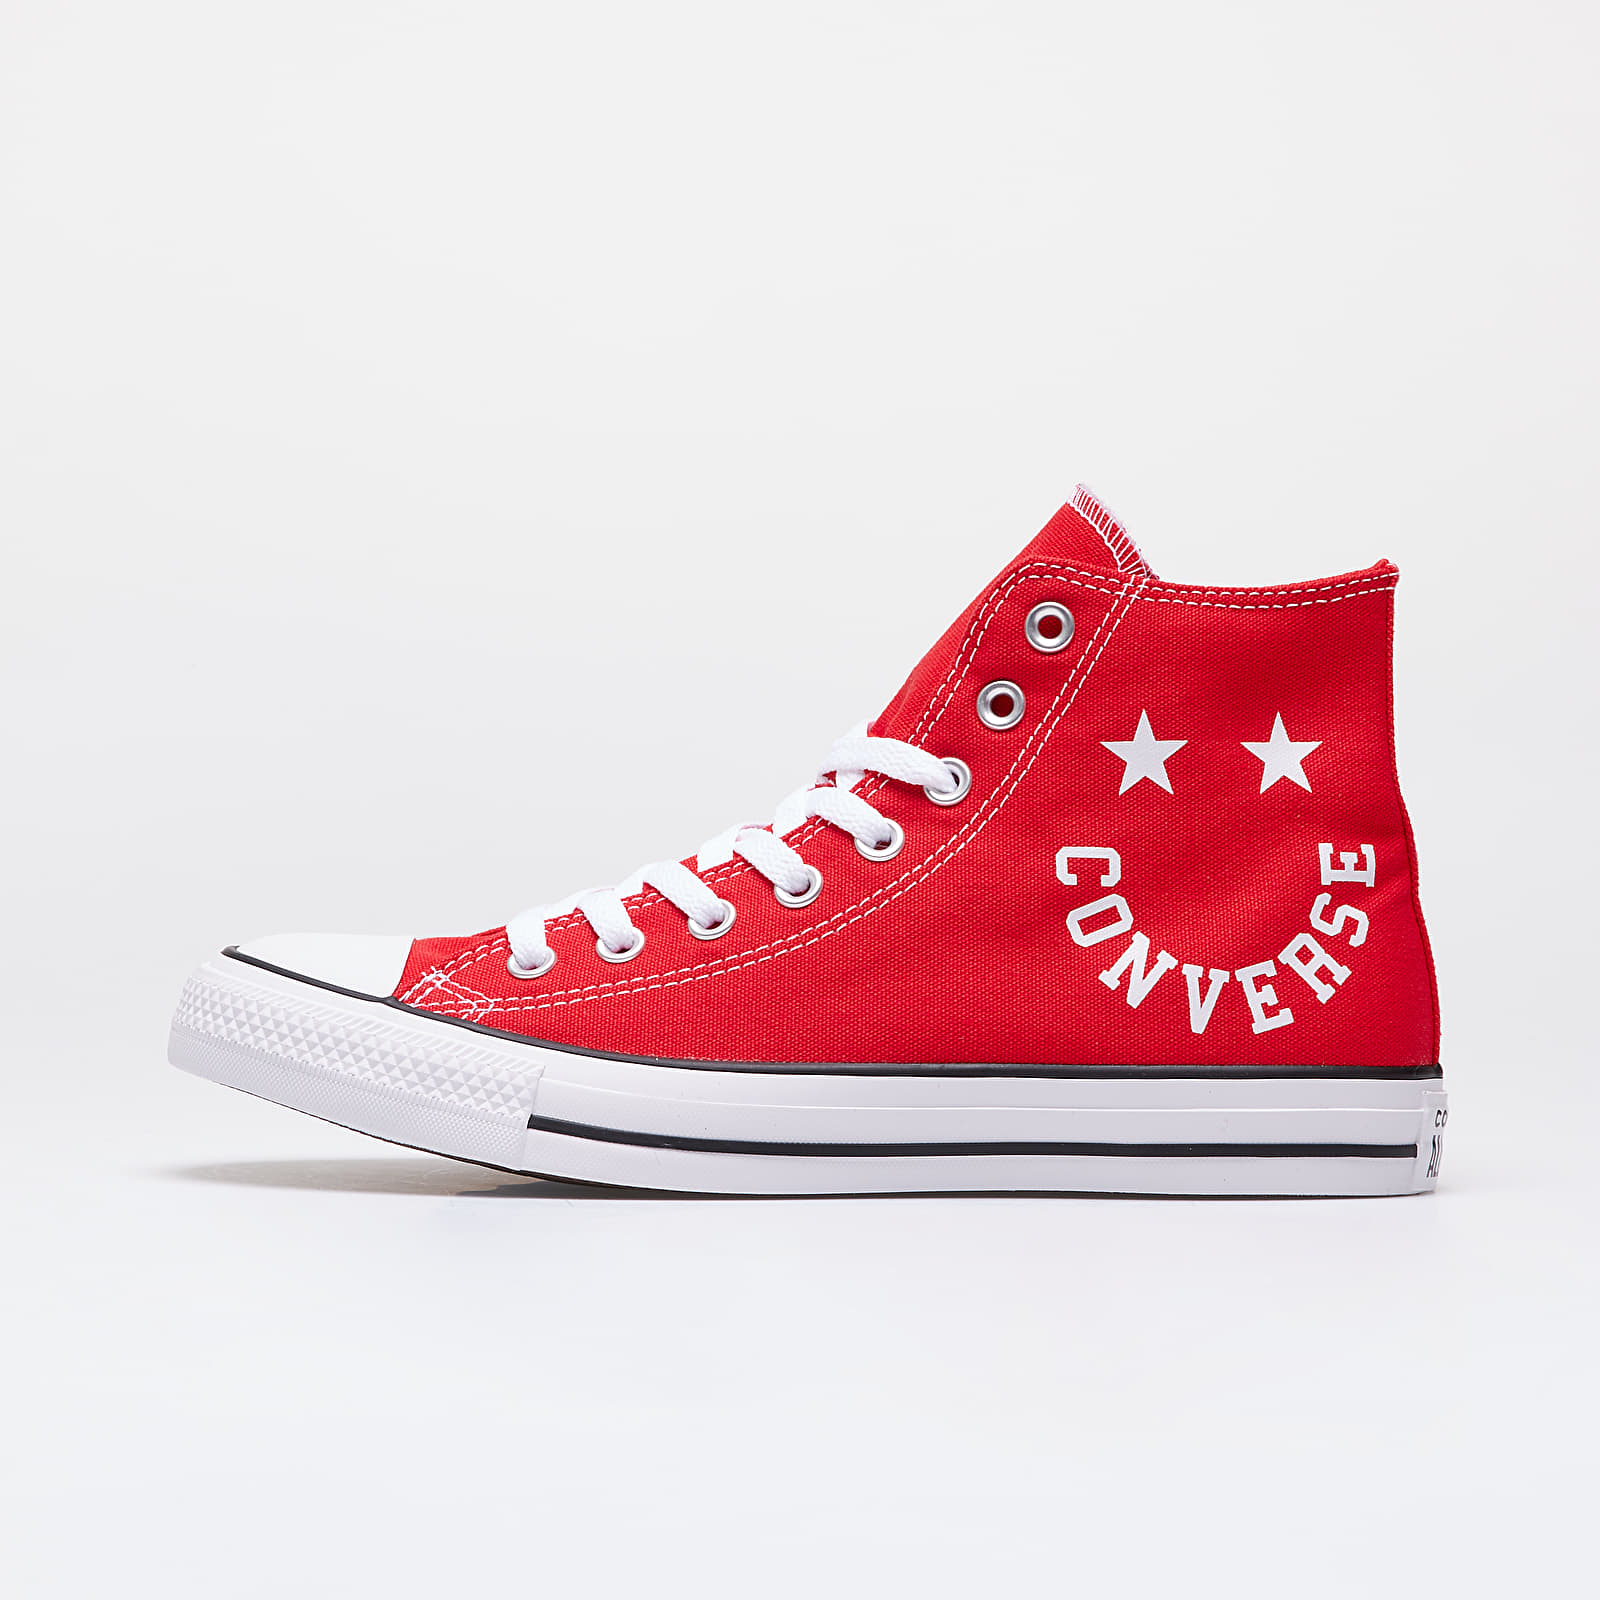 Men's shoes Converse Chuck Taylor All Star Medium Red